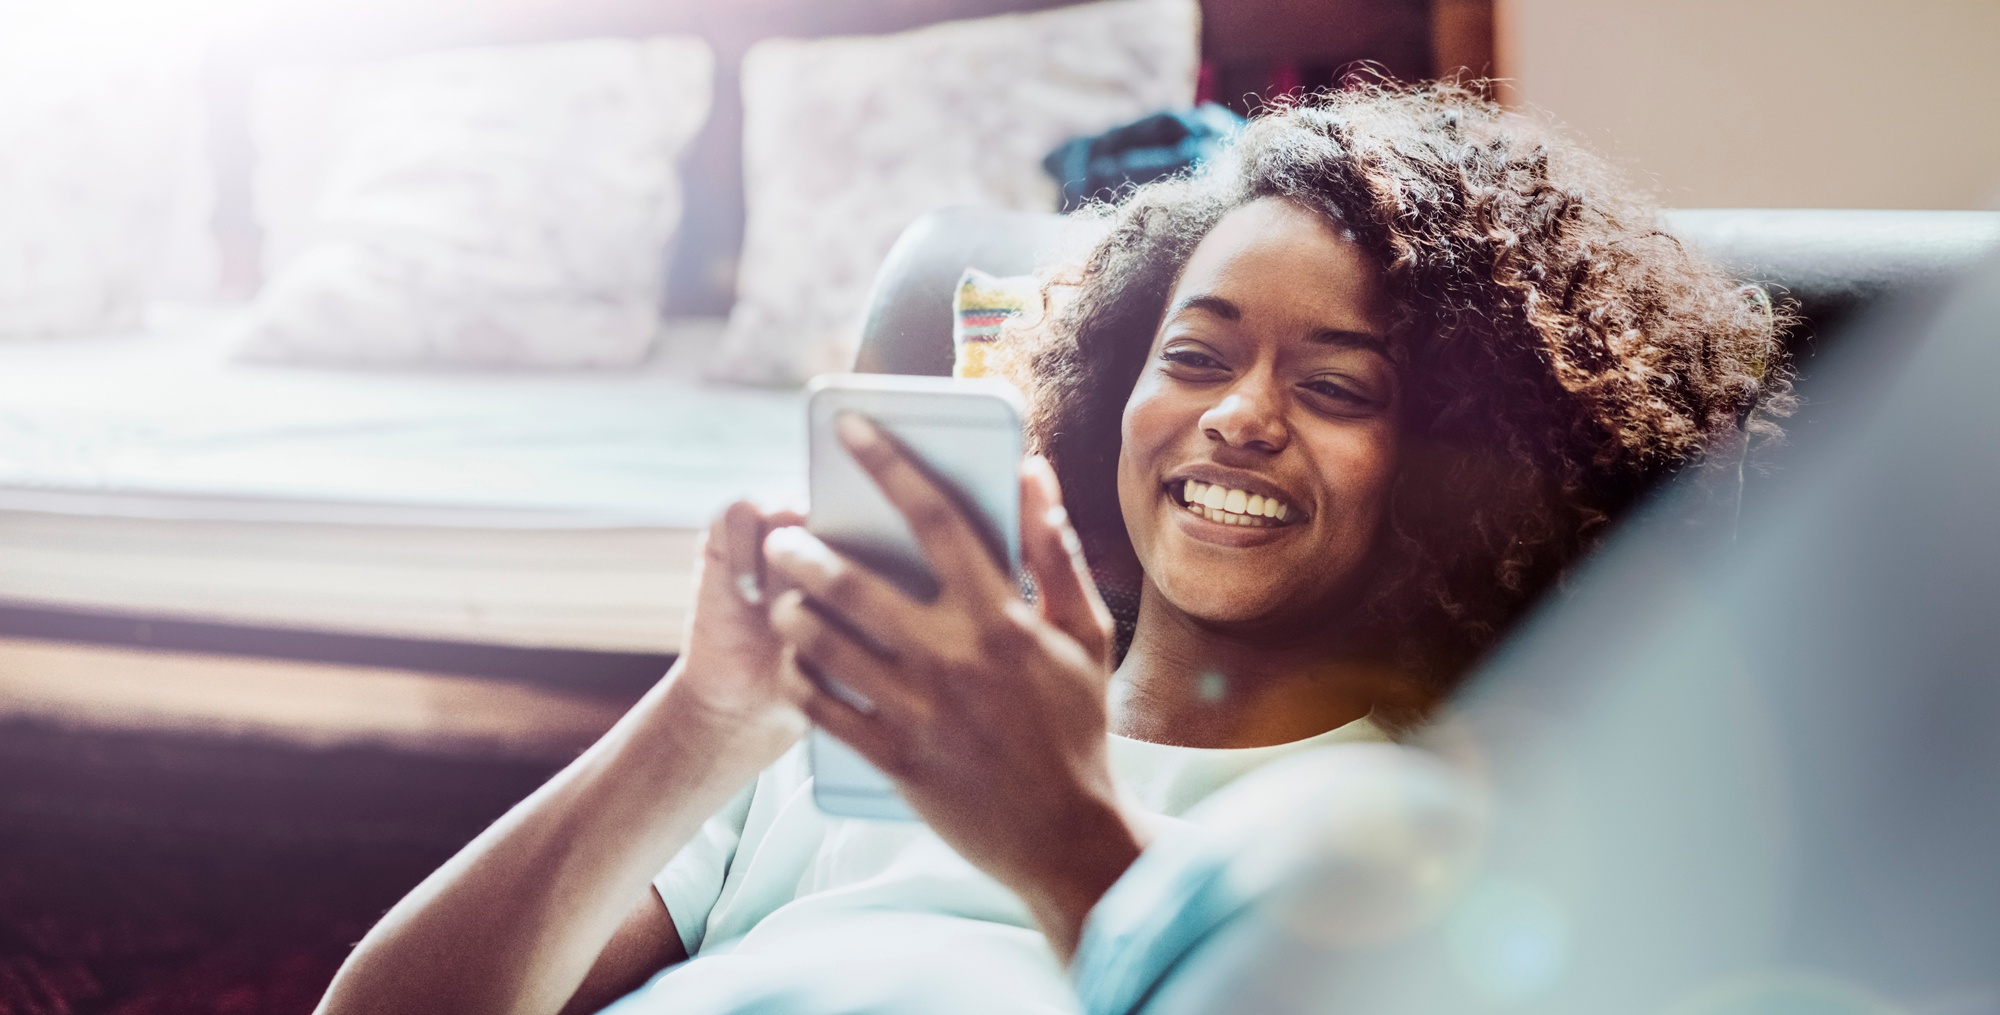 woman-laying-on-couch-smartphone-smiling.jpg